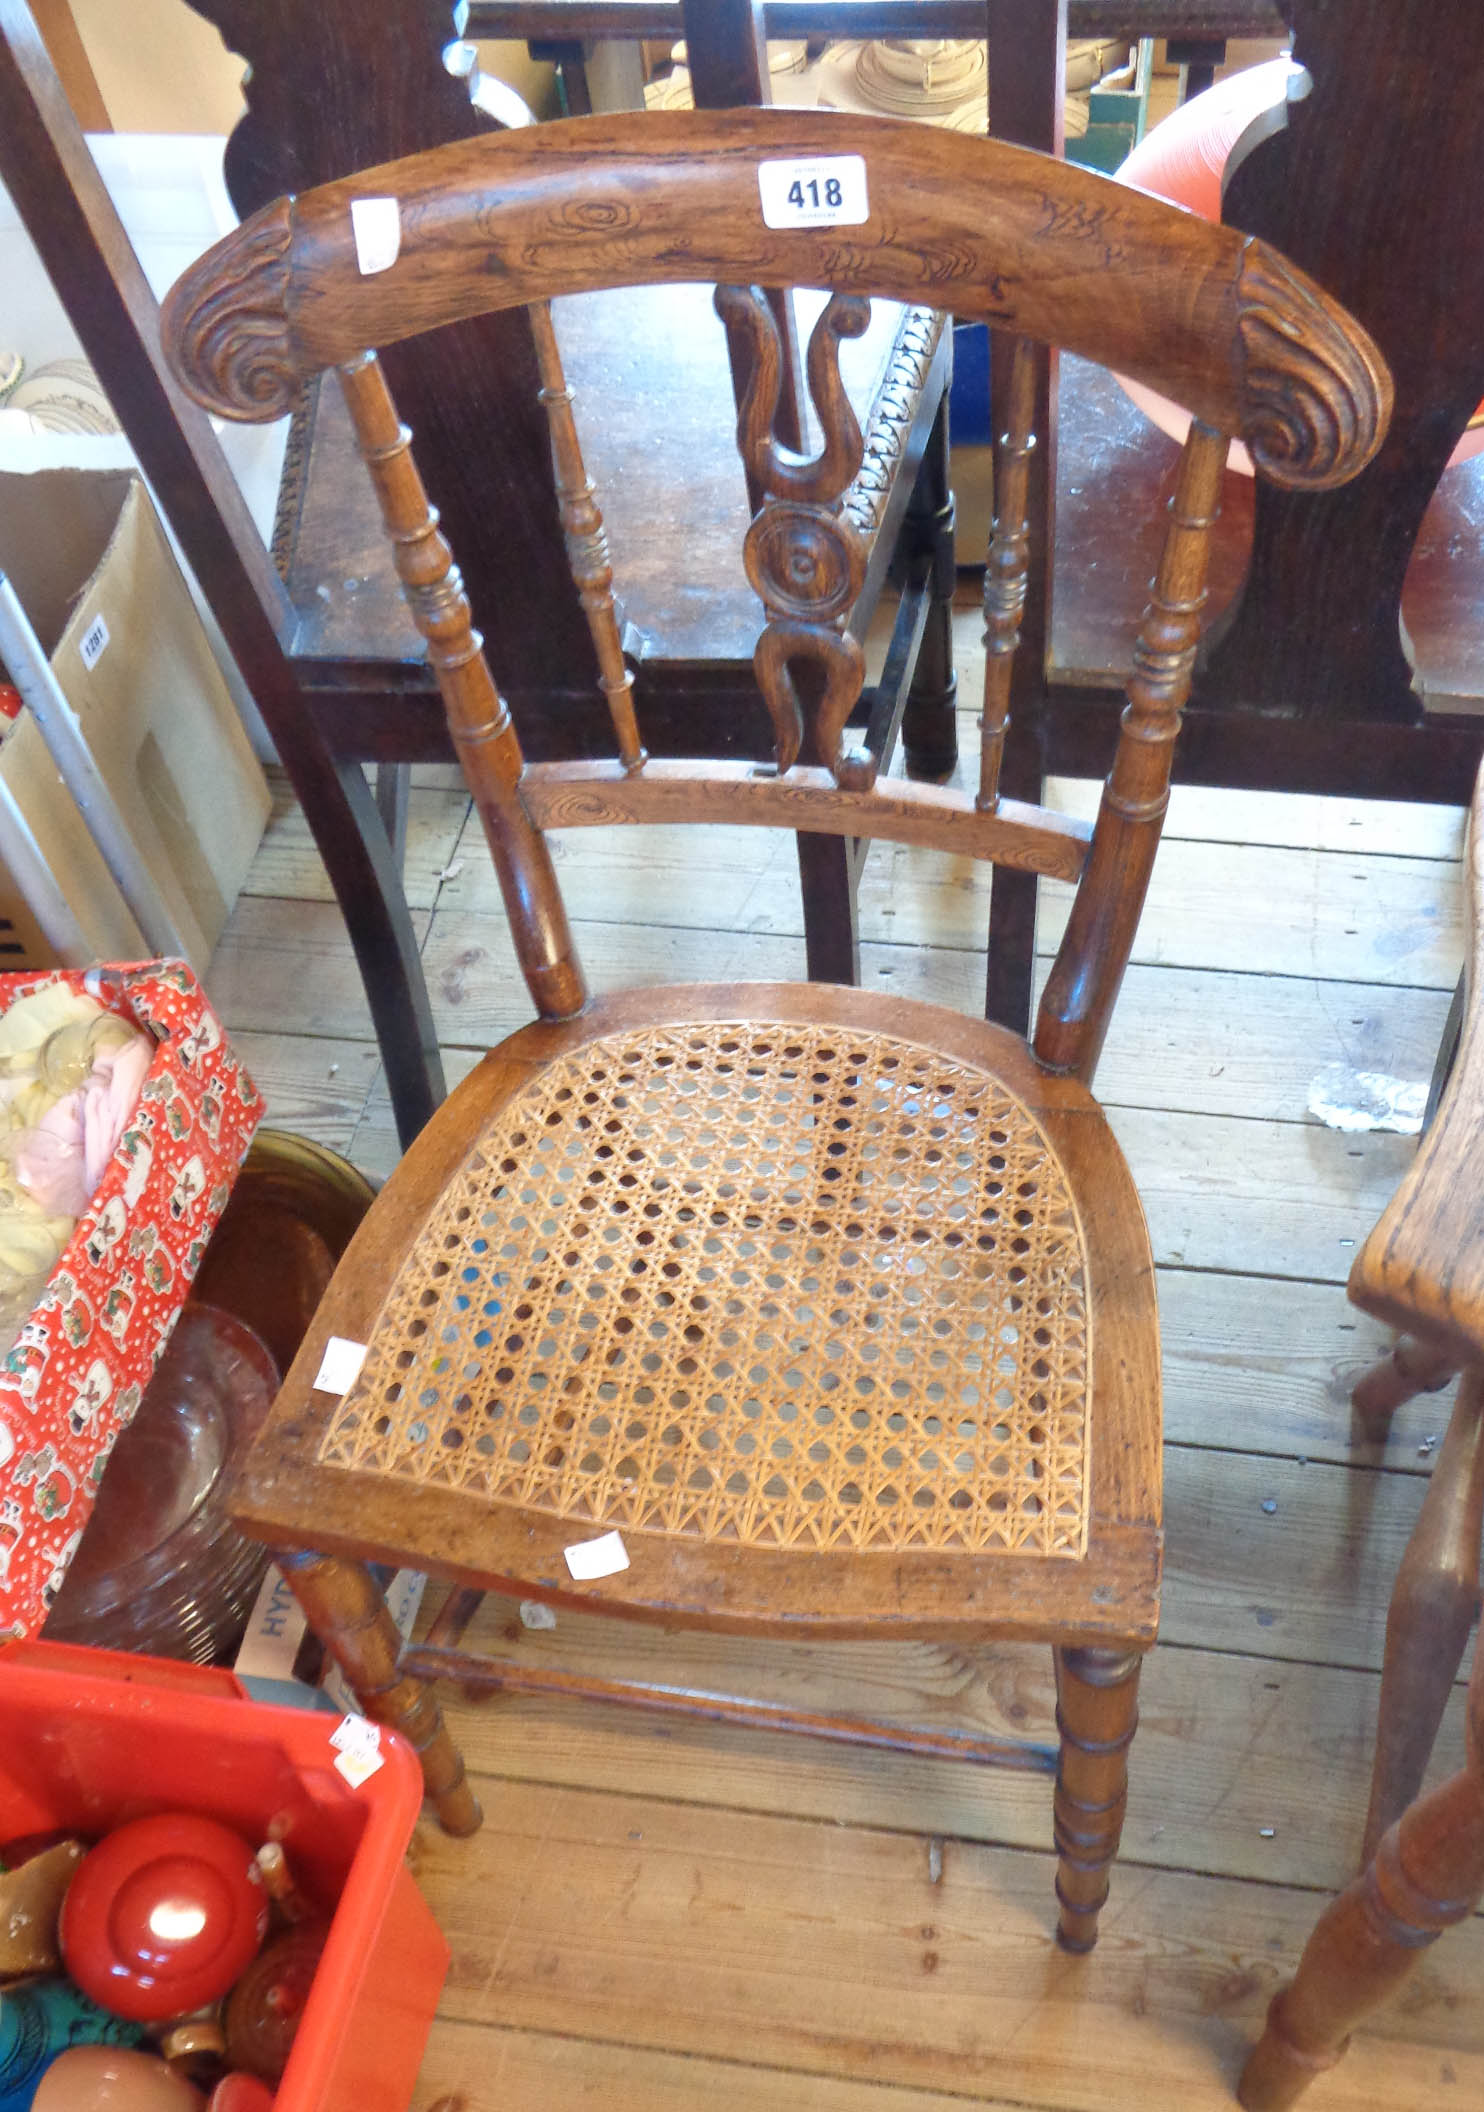 A 19th Century simulated rosewood bedroom chair with rattan seat panel - splat a/f